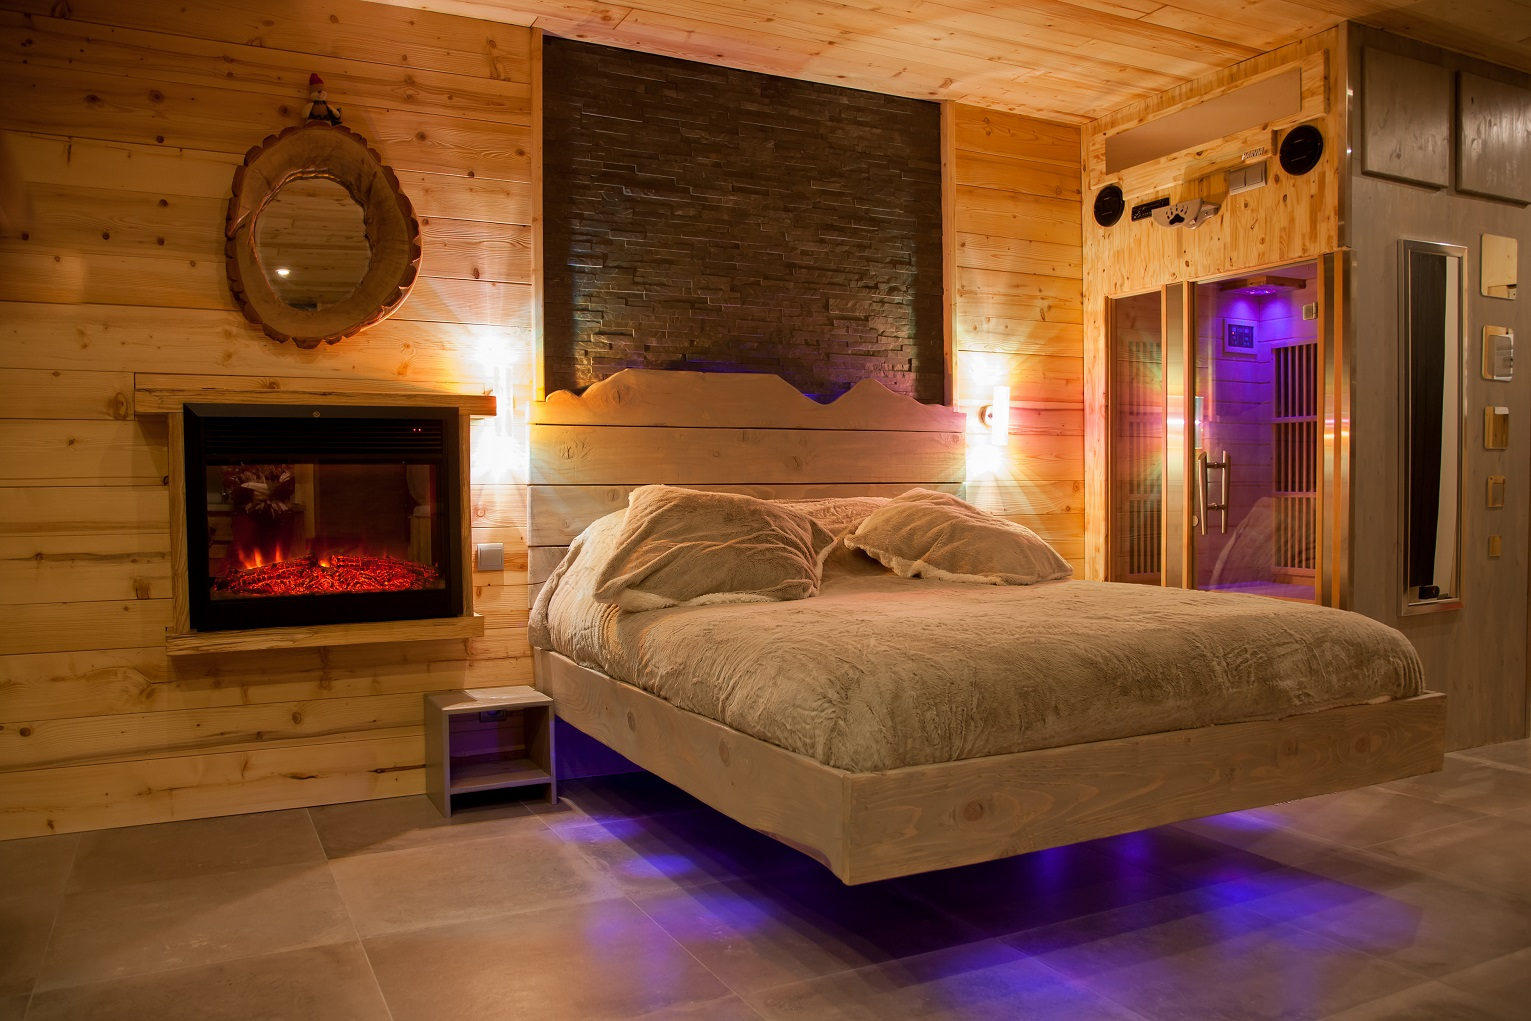 suite spa ski avec sauna et jacuzzi nuit d 39 amour. Black Bedroom Furniture Sets. Home Design Ideas